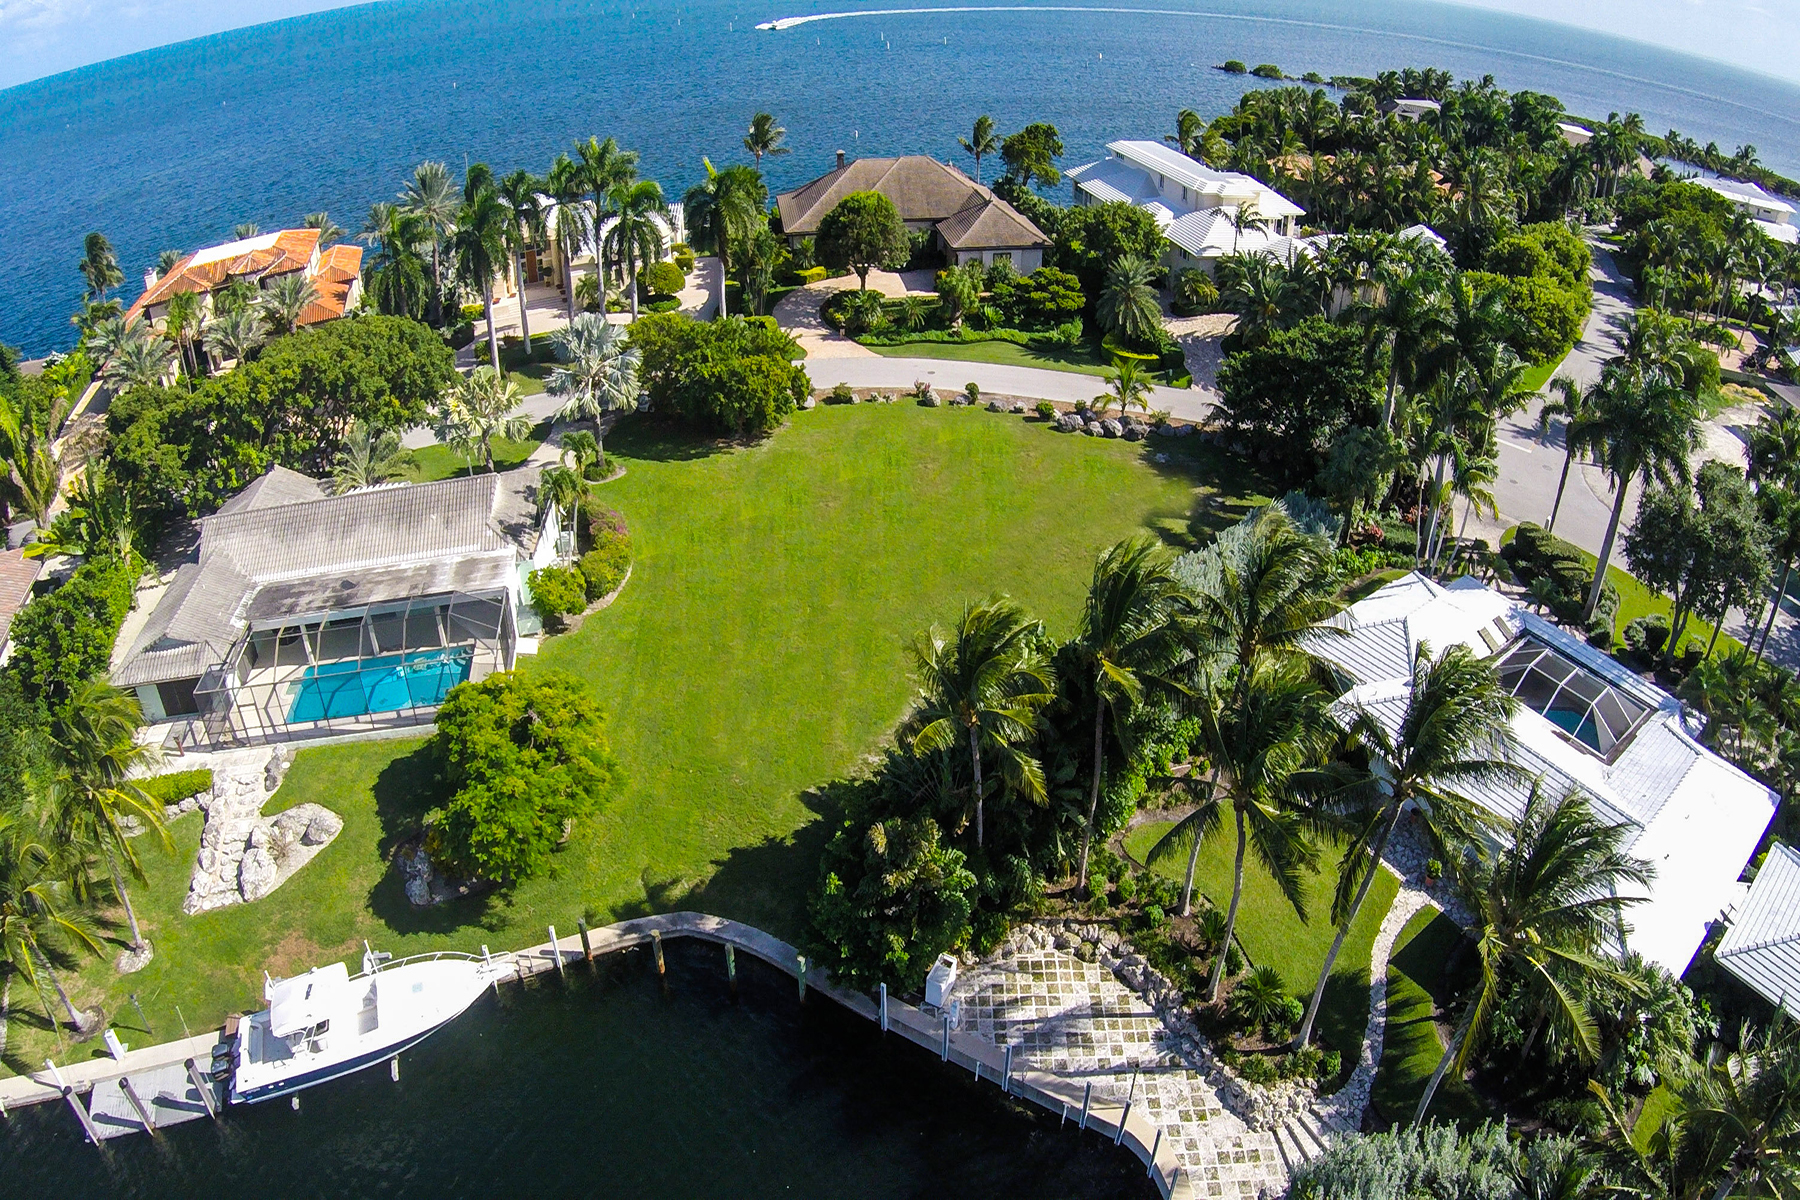 Land for Sale at Stunning Waterfront Lot at Ocean Reef Club 37 Angelfish Cay Drive Key Largo, Florida 33037 United States